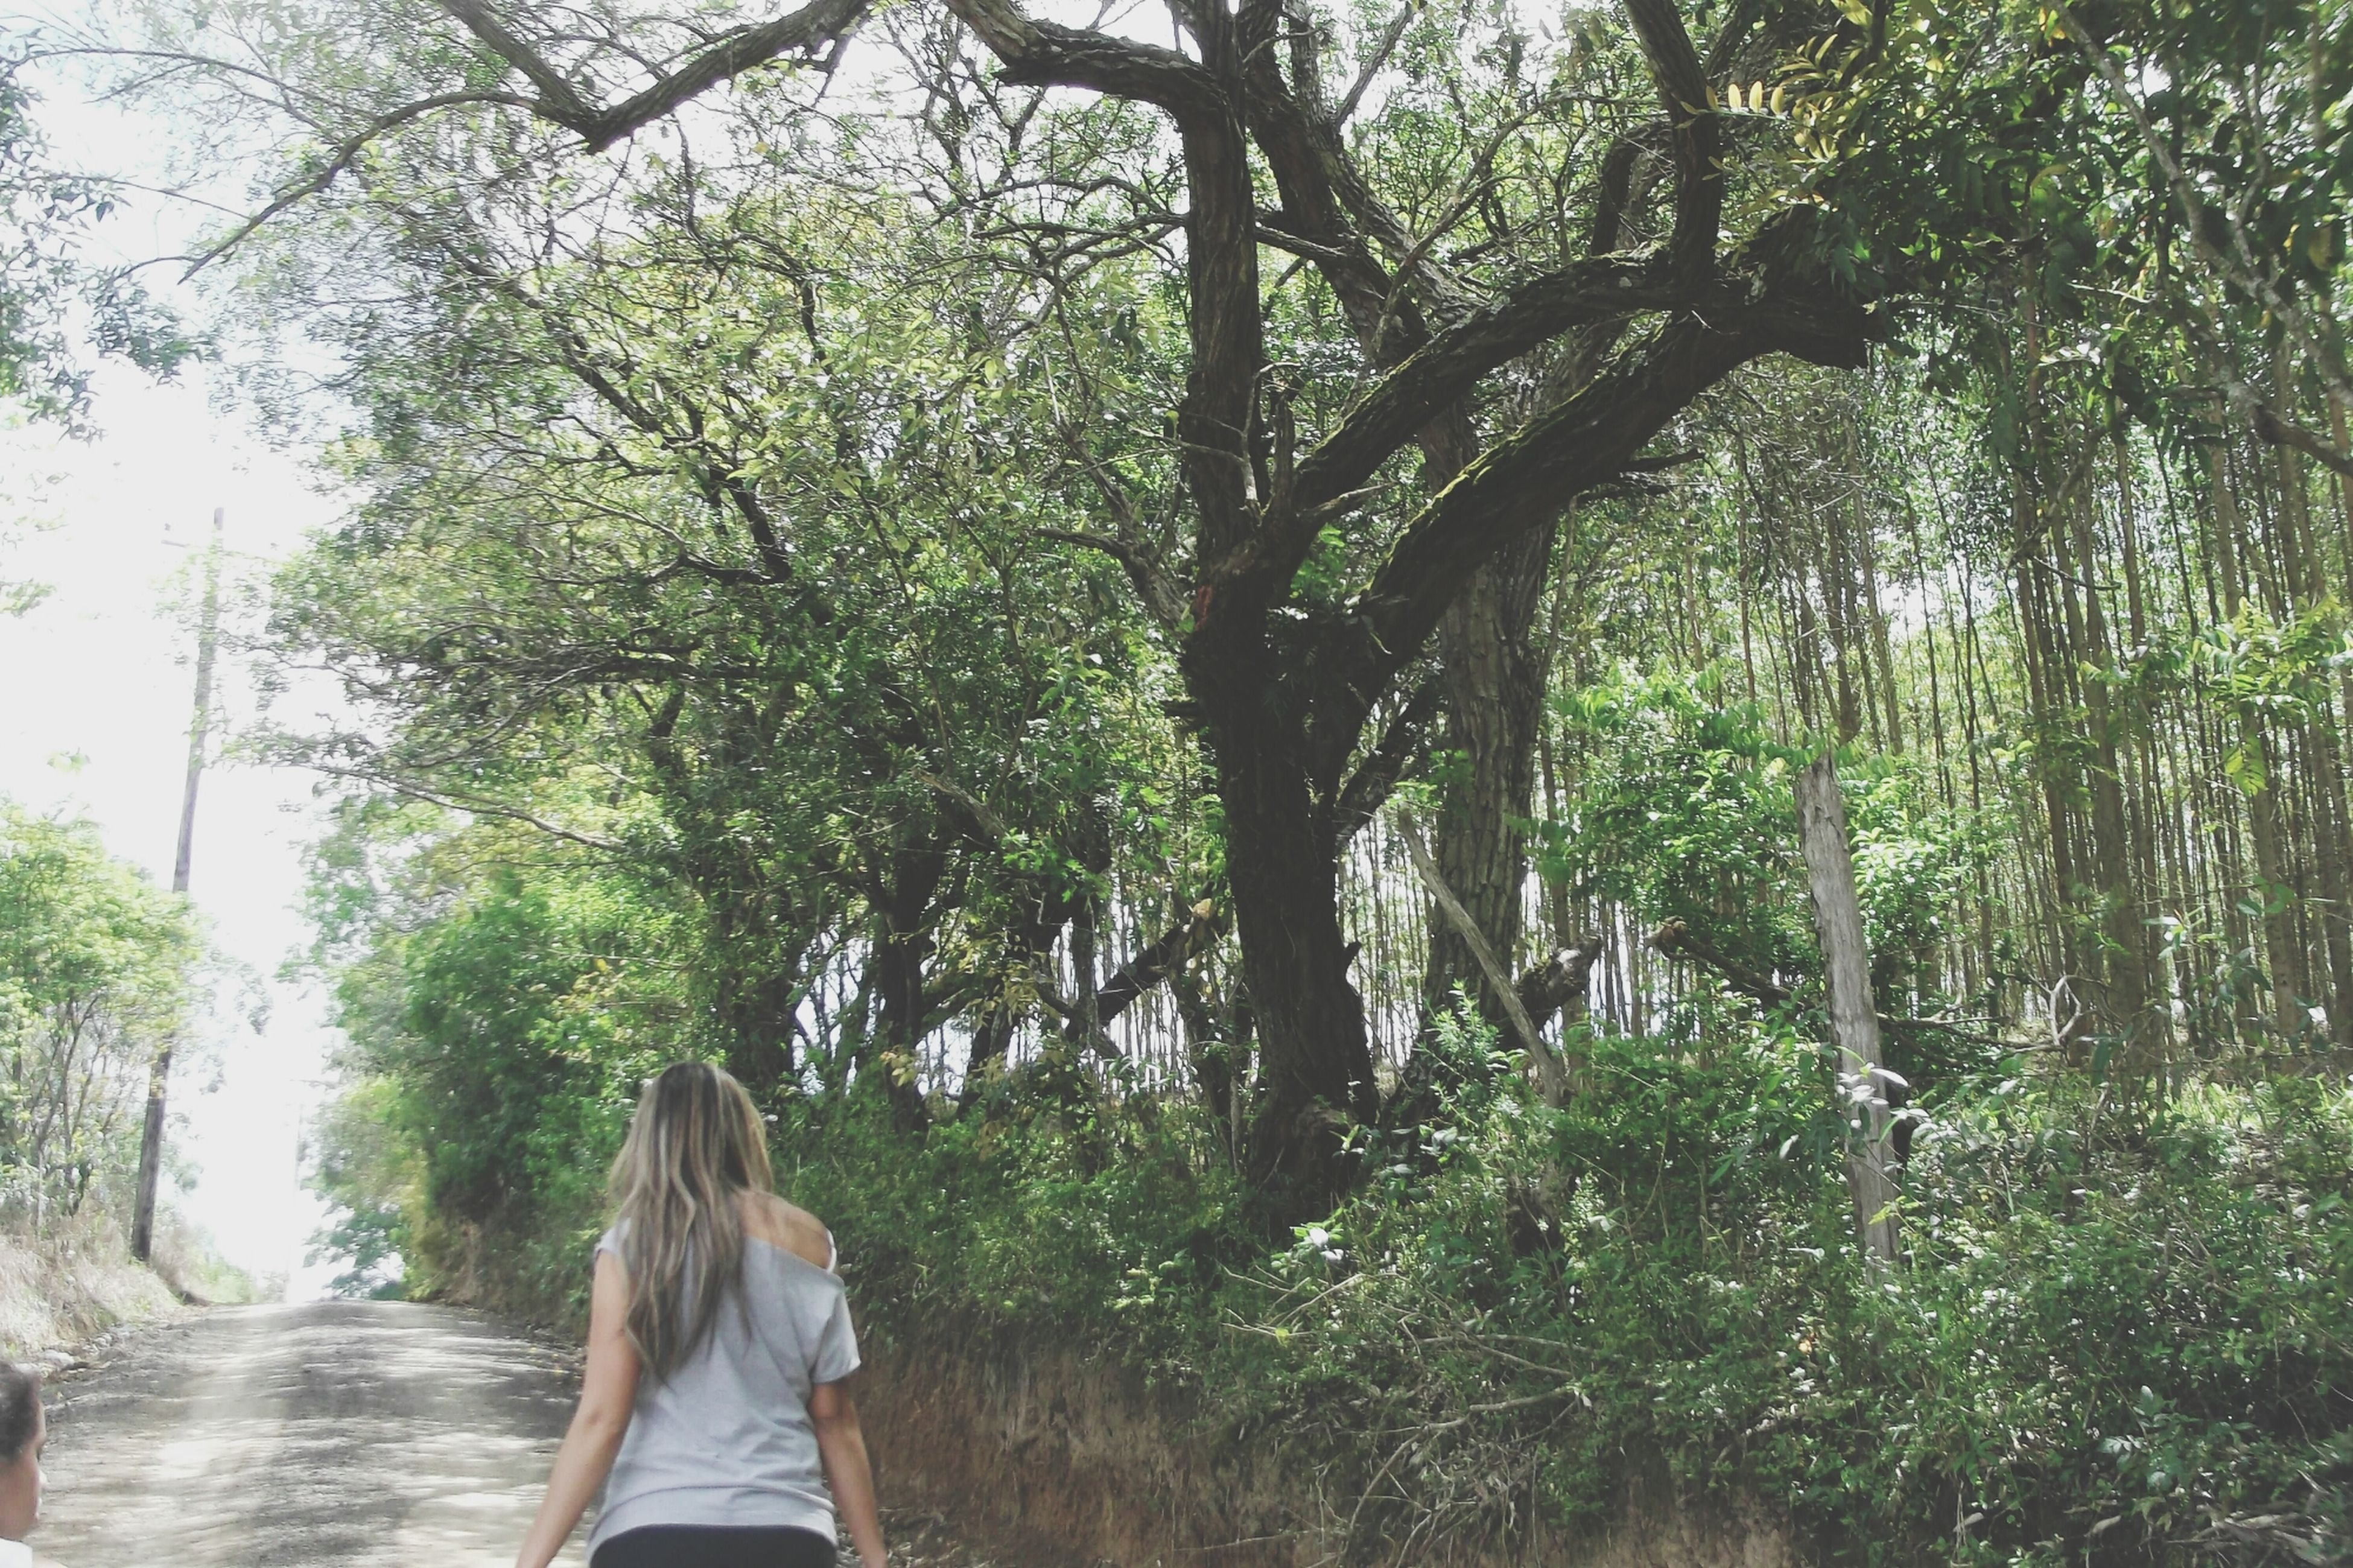 tree, lifestyles, growth, leisure activity, rear view, tree trunk, branch, standing, person, casual clothing, men, nature, day, park - man made space, green color, walking, full length, sunlight